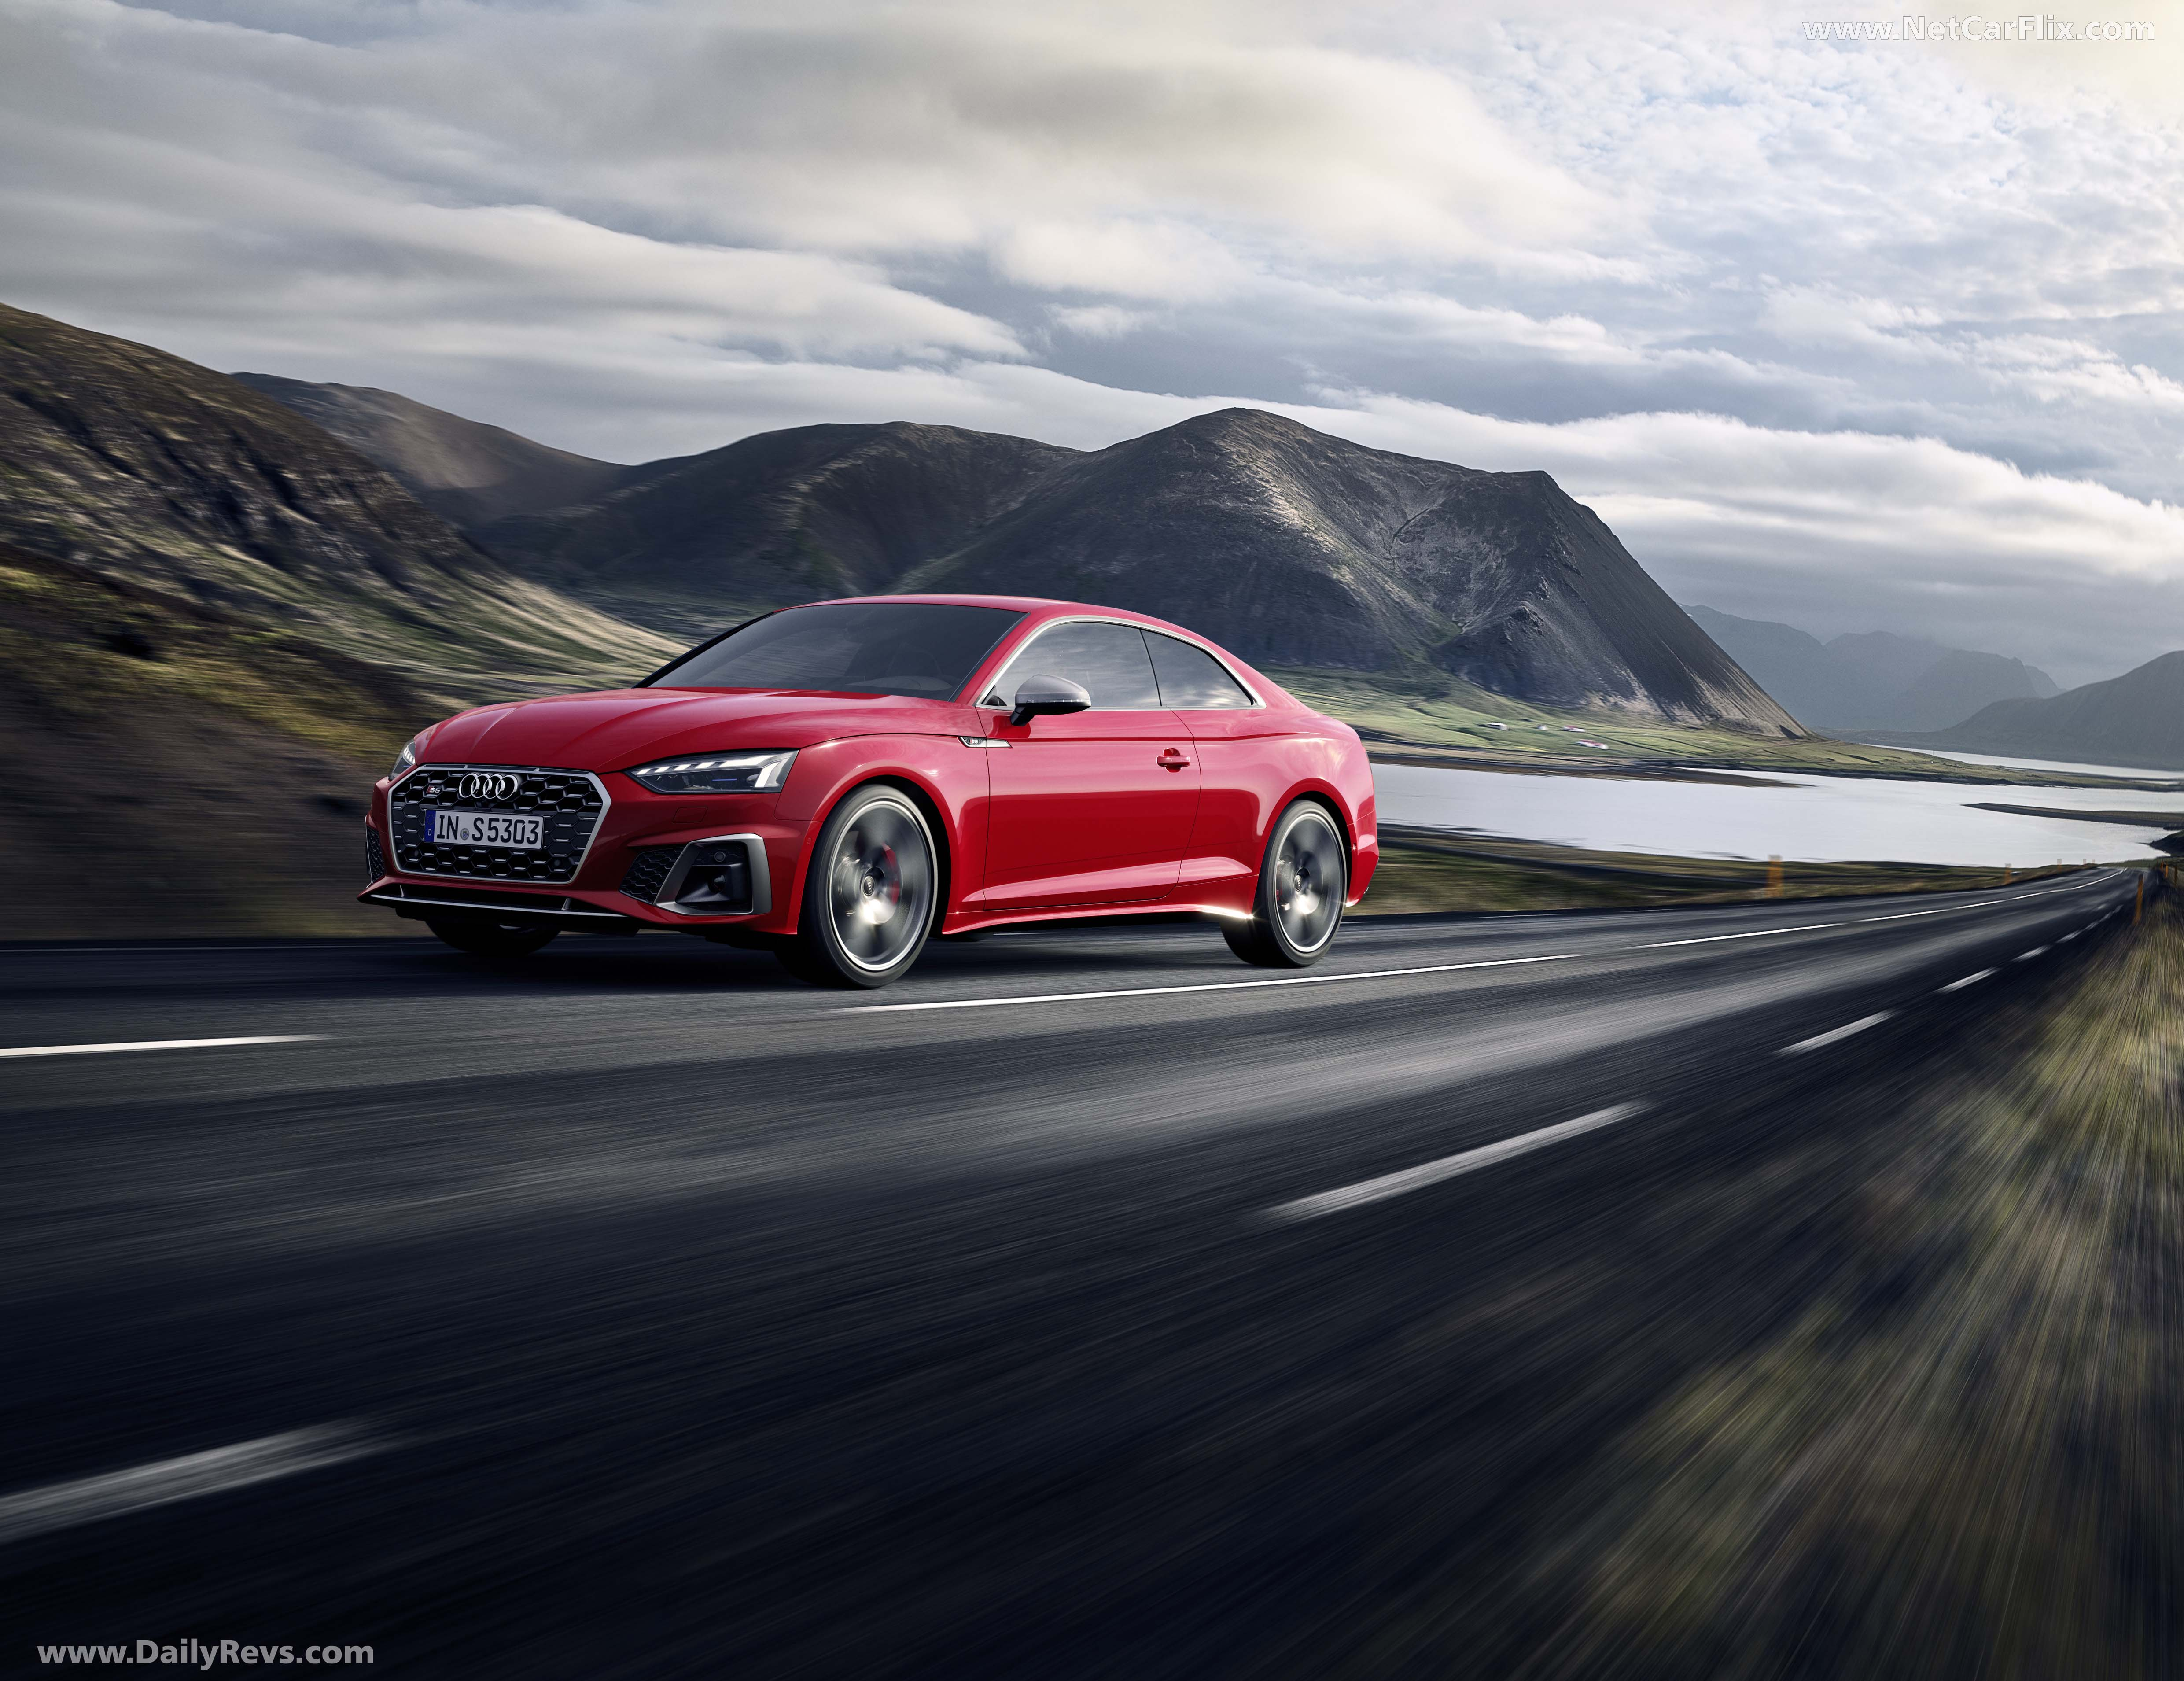 2020 audi s5 coupe tdi  pictures images photos